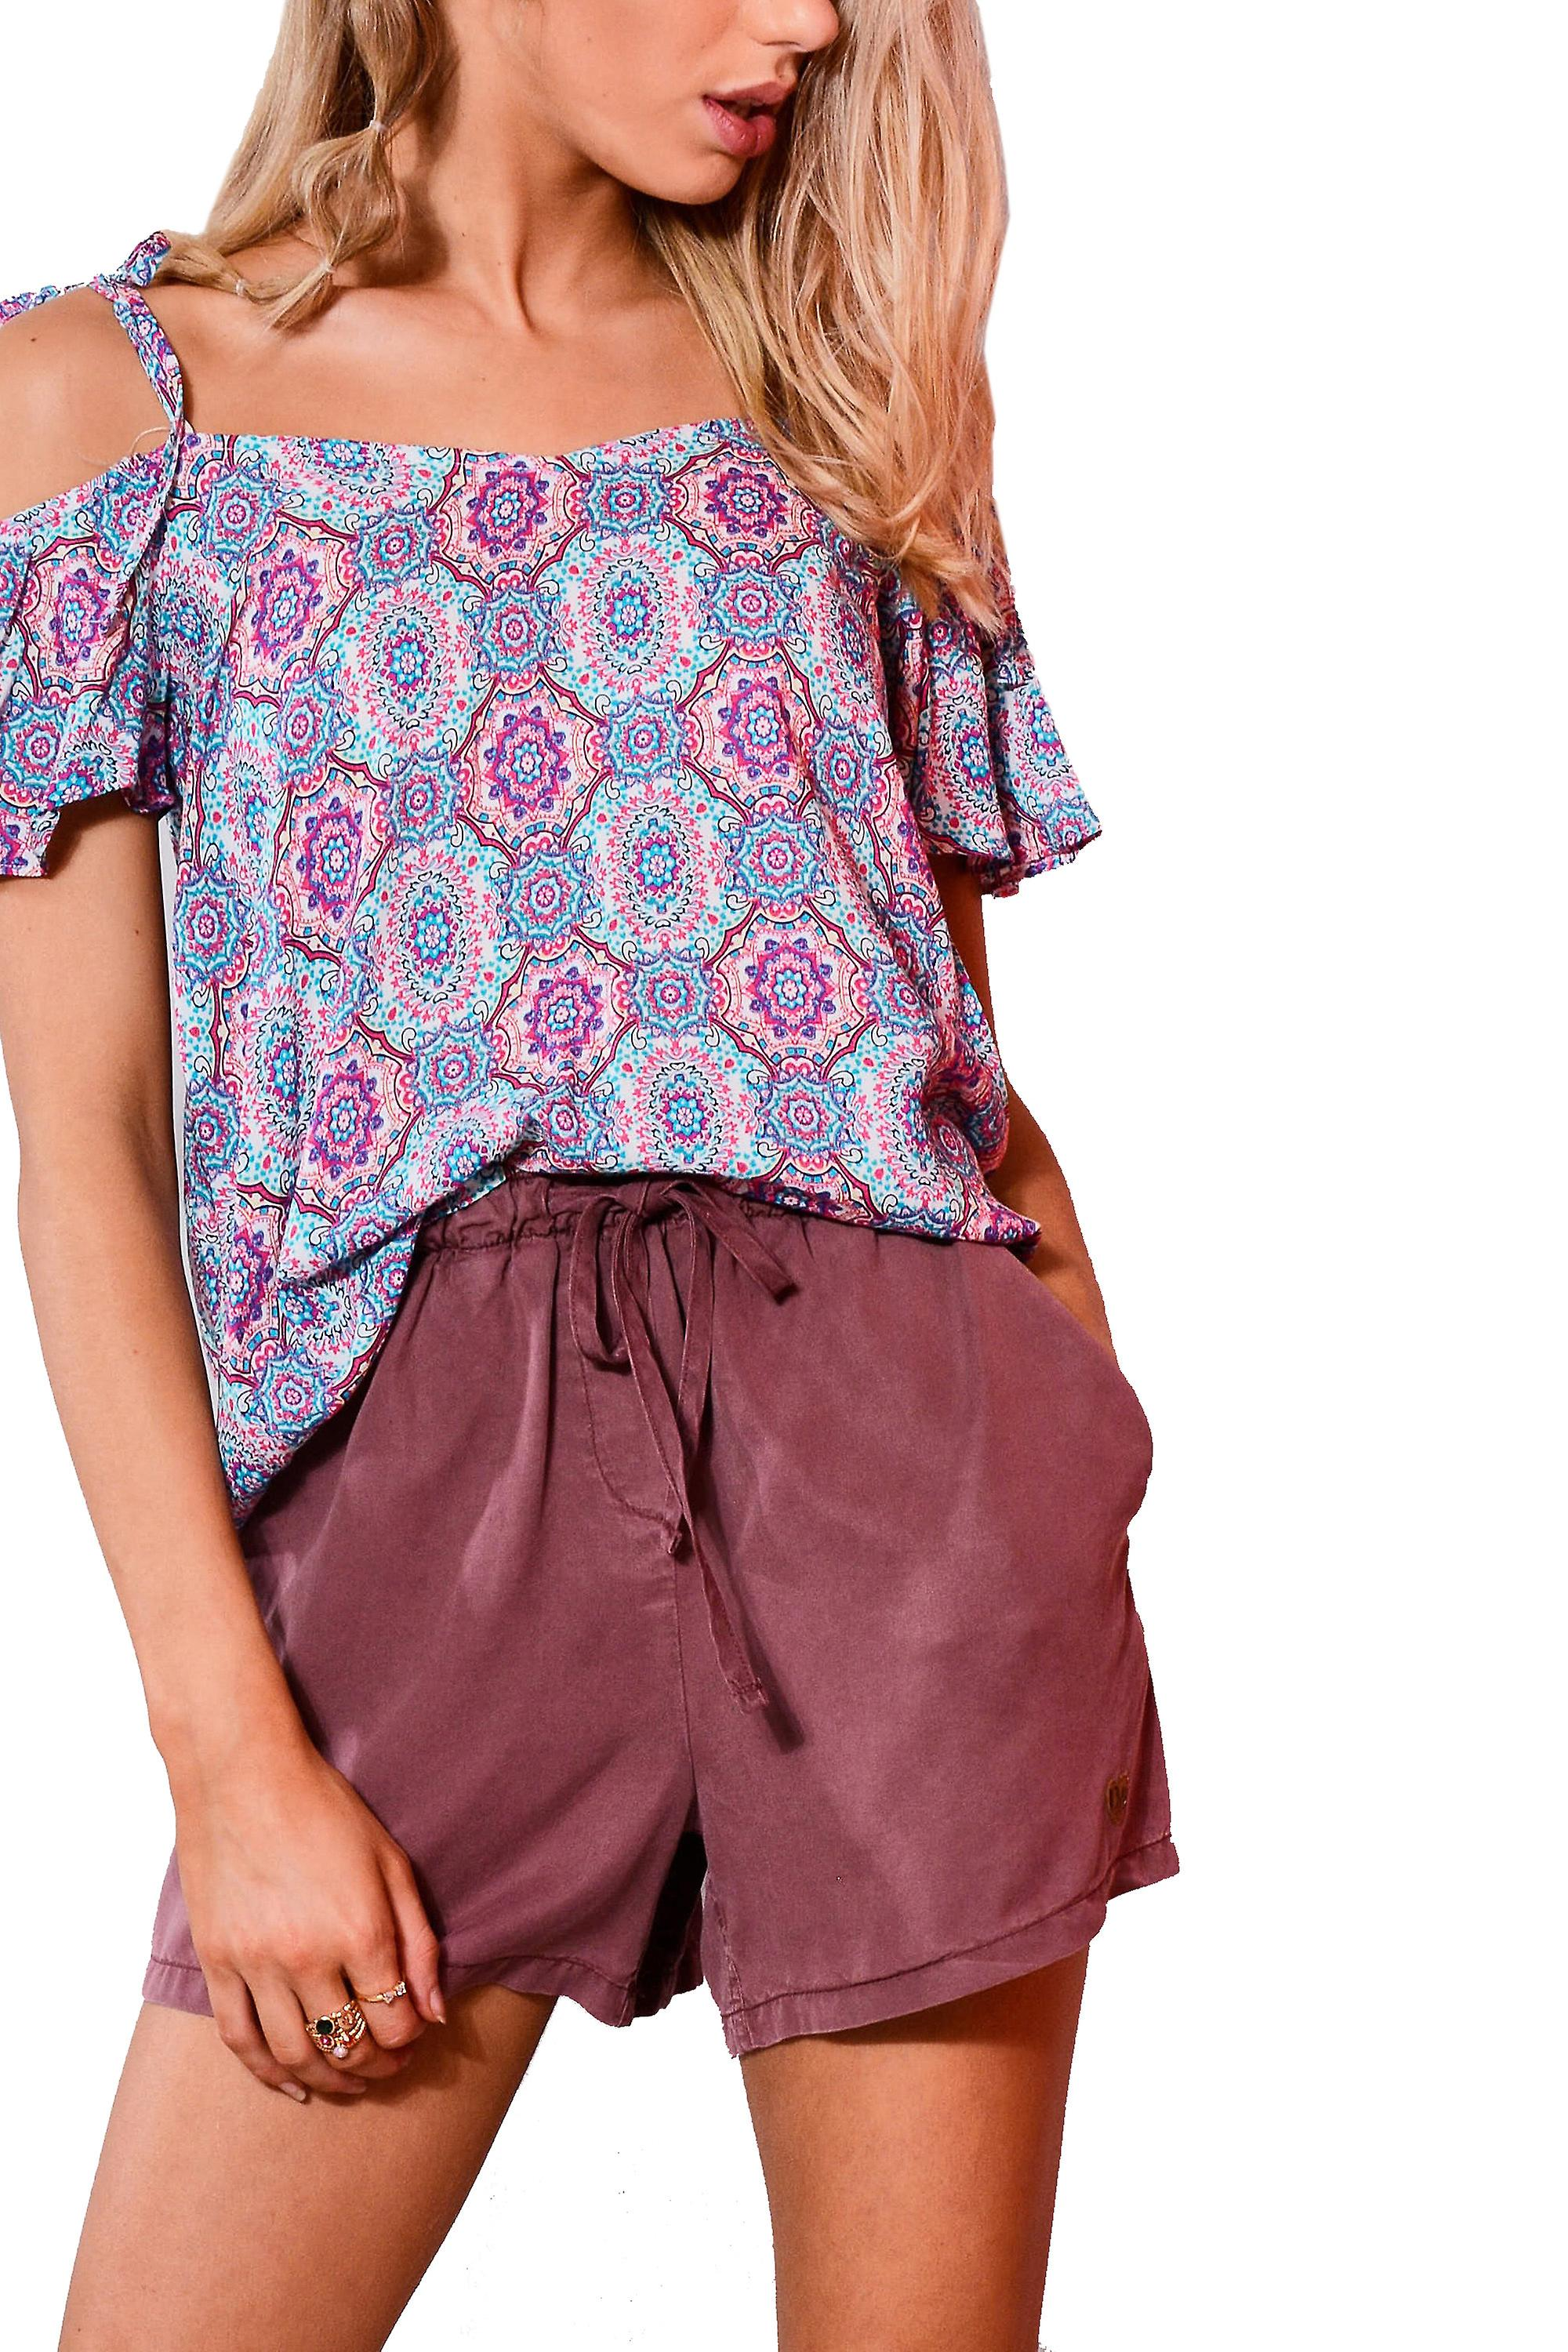 Double Agent High Waisted Relaxed Purple Shorts With Draw String